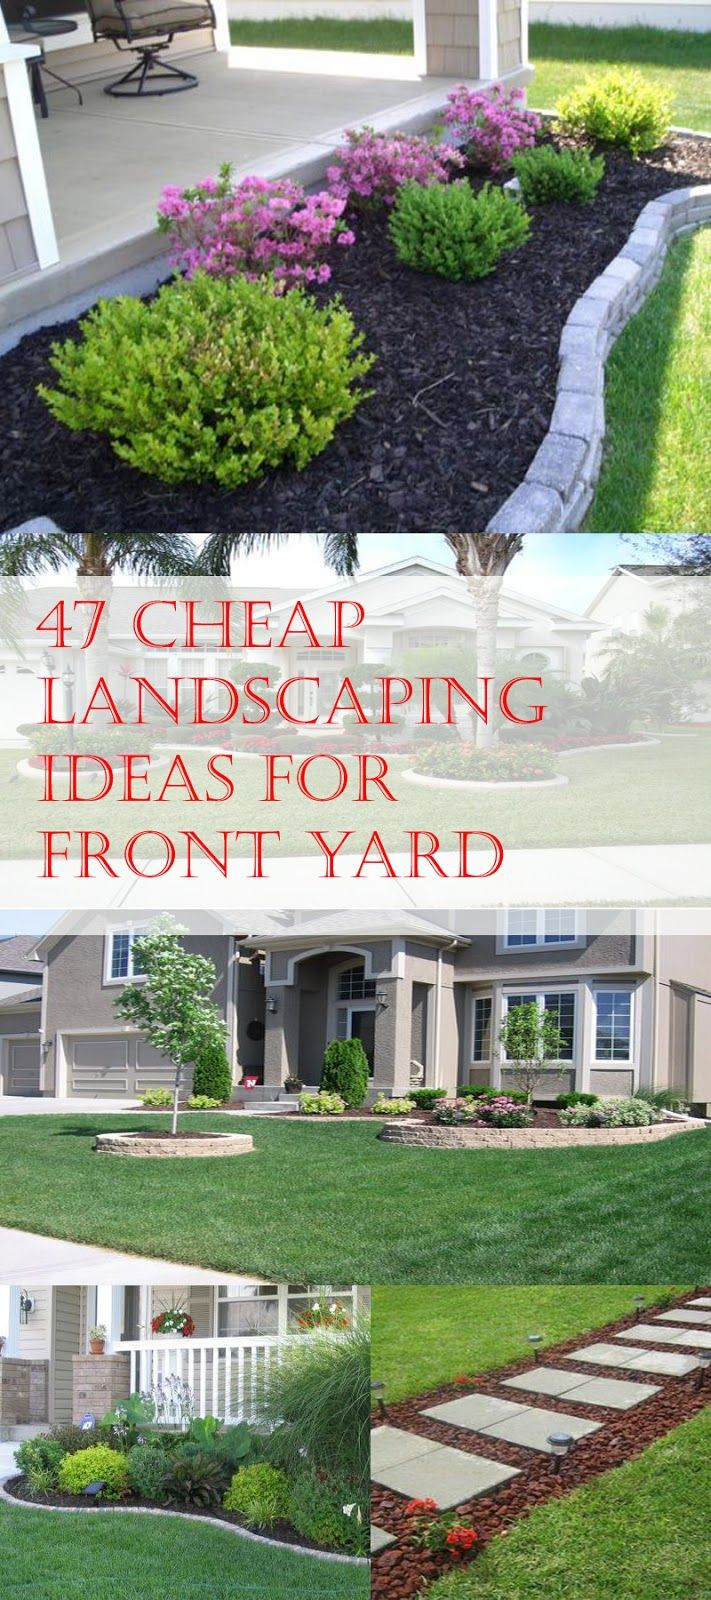 Best 25+ Front landscaping ideas ideas on Pinterest